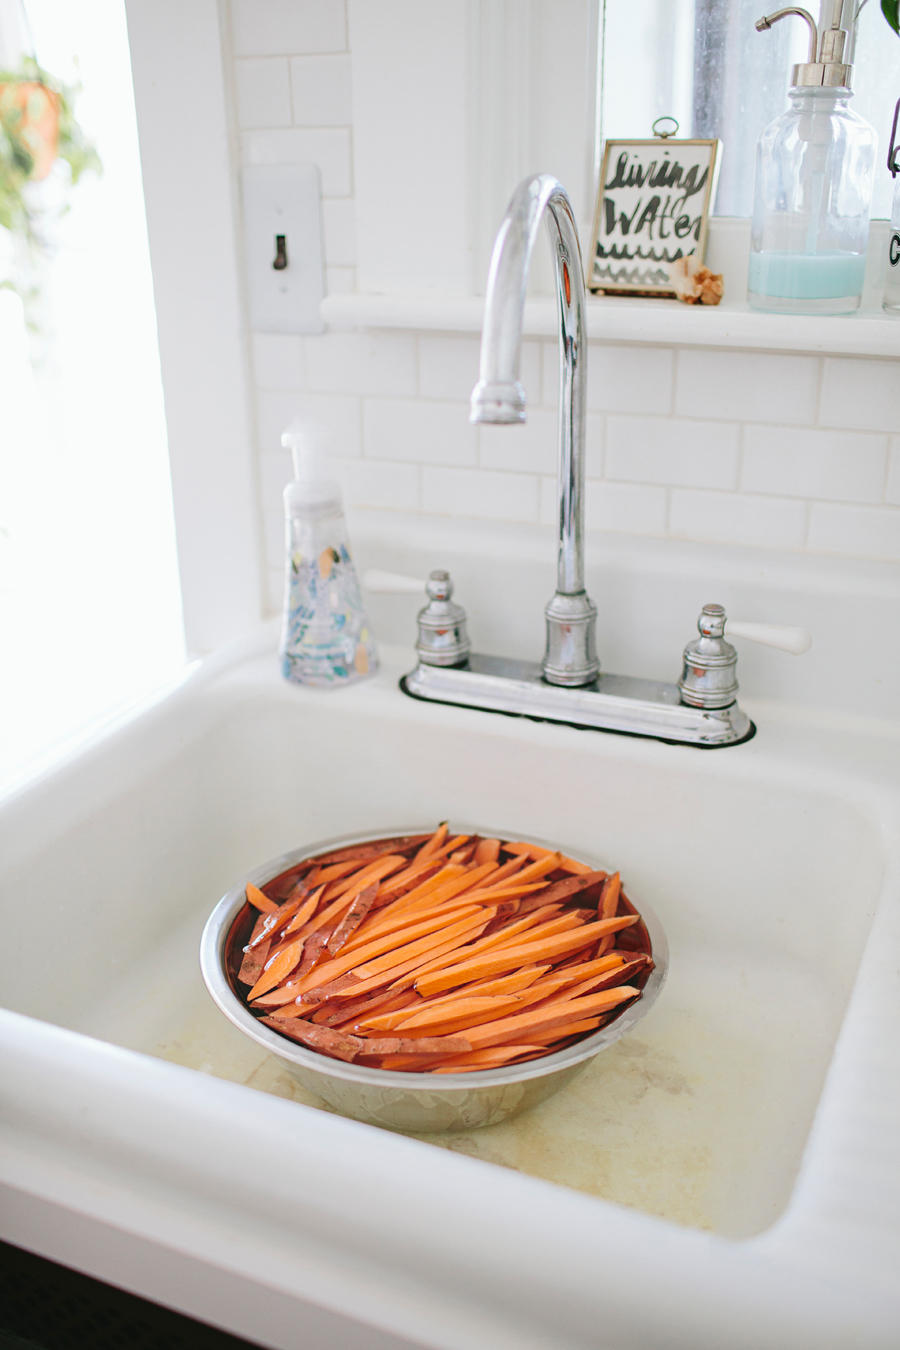 brookecourtney_sweetpotatofries_ovenbaked_frysauce-5.jpg